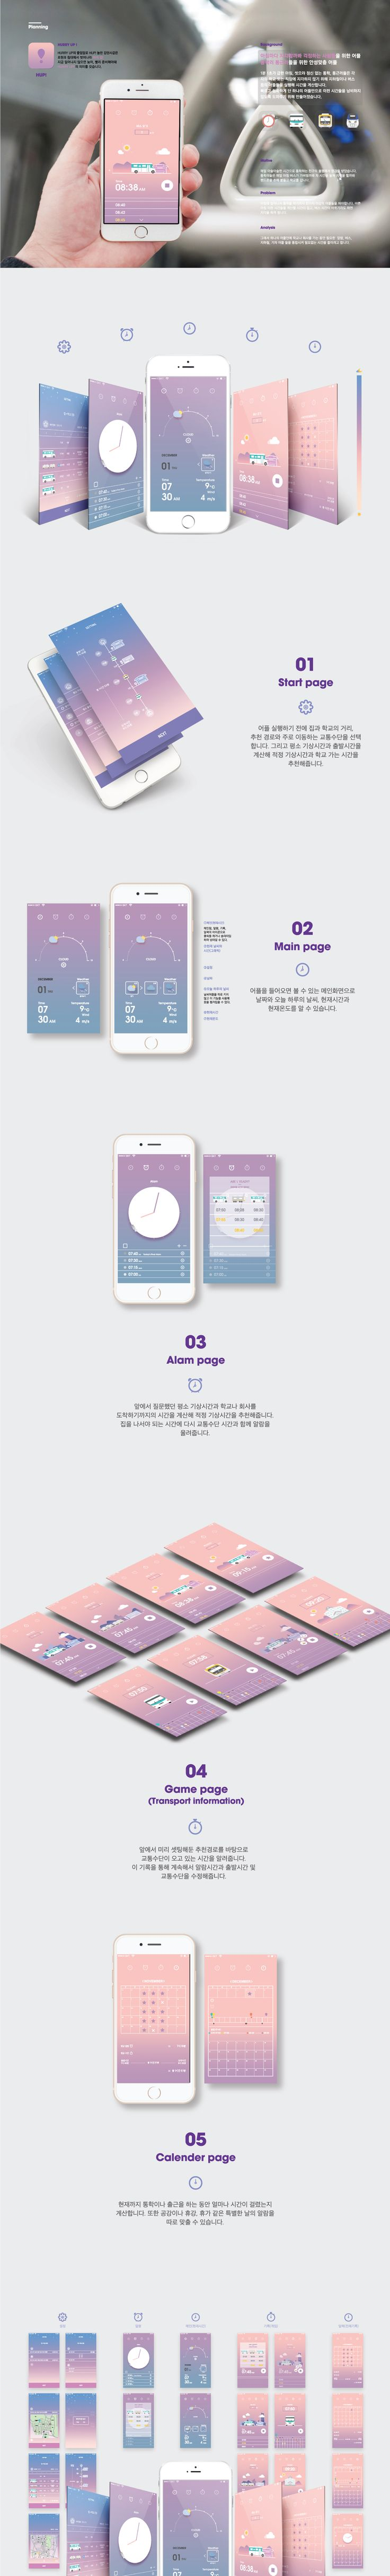 People have to go to school or office haven't much time in morning. So I made a app. Necessary applications to go to schools and companies into one. Those are train app, subway app, bus app, and alarm app.통학러와 통근러들은 아침에 시간이 많지 않습니다.그래서 저는 학교나 회사를 가기 위…